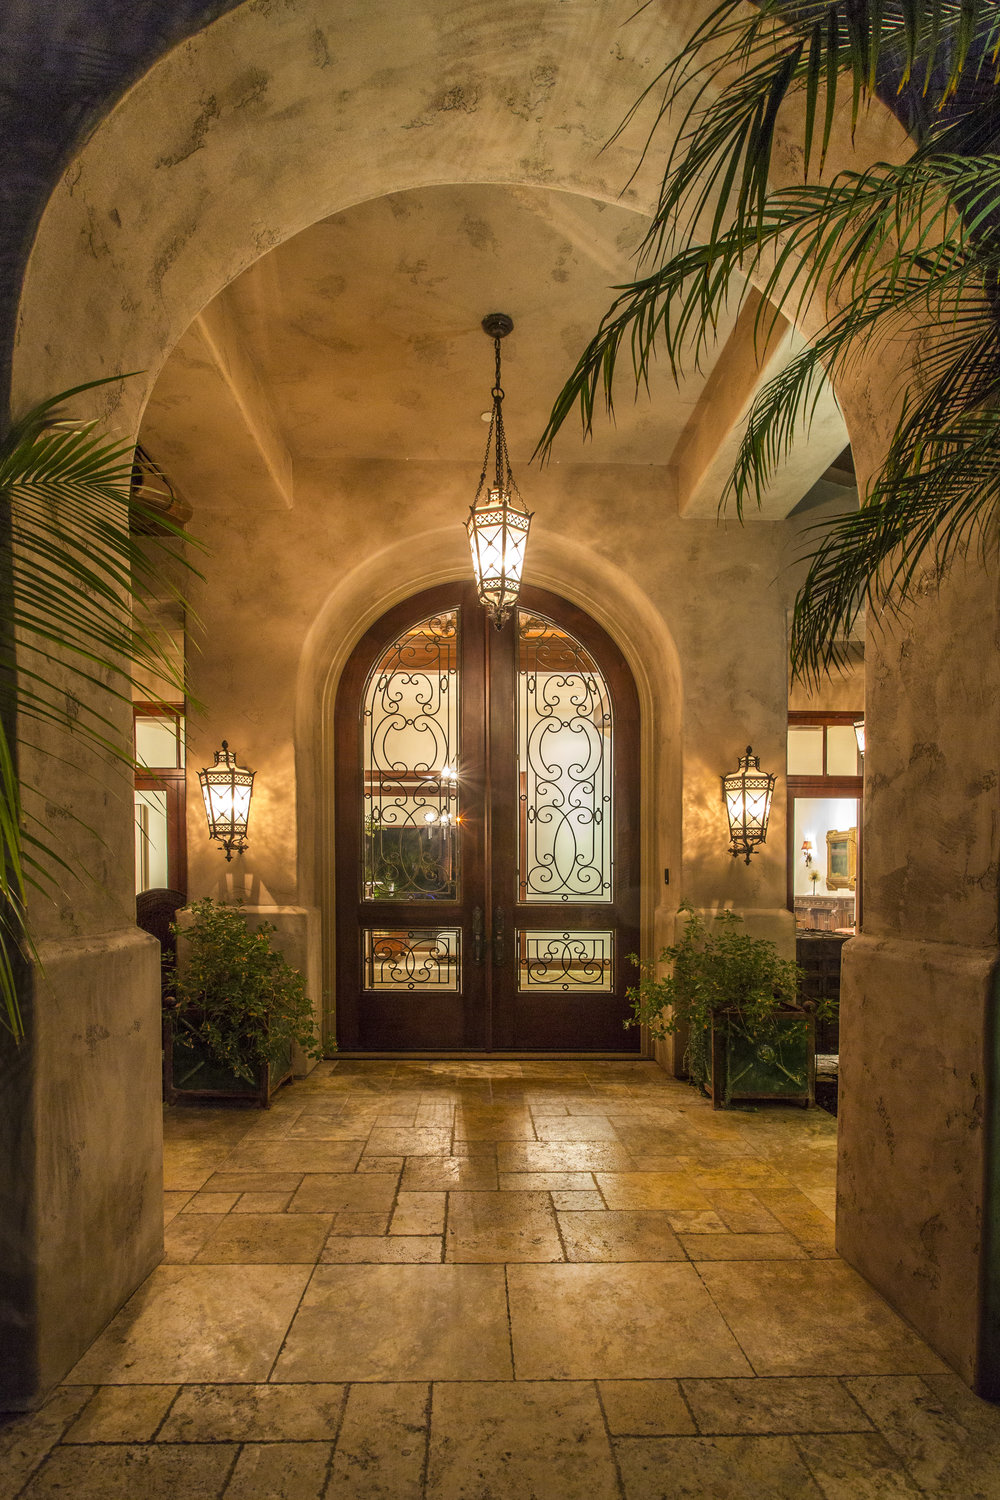 Front Door Entry at Dusk.jpg